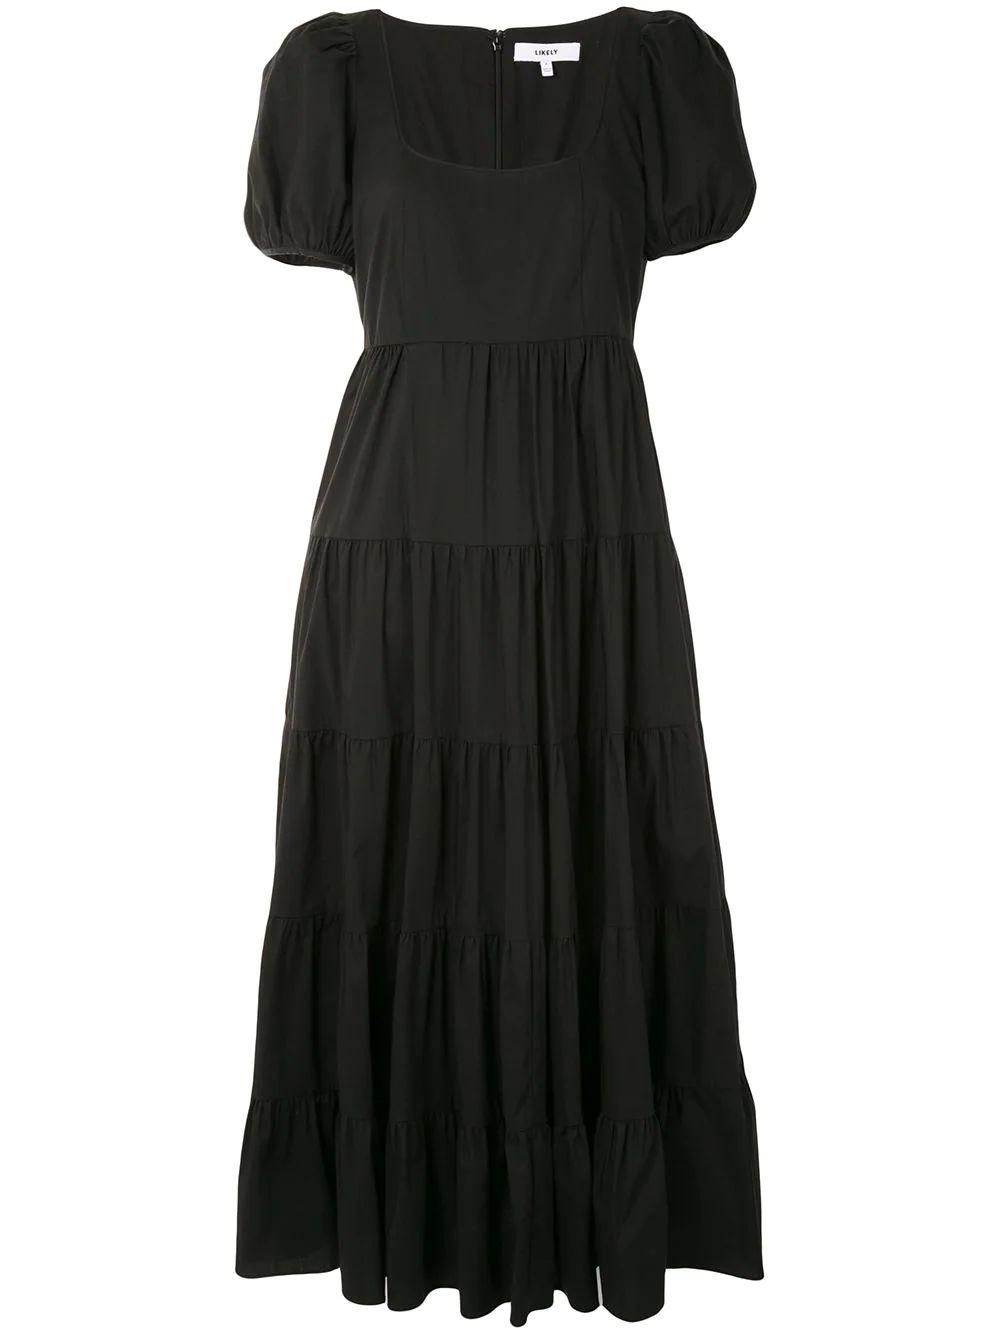 Chloe Scoop Neck Tiered Dress Item # YD12182231Y